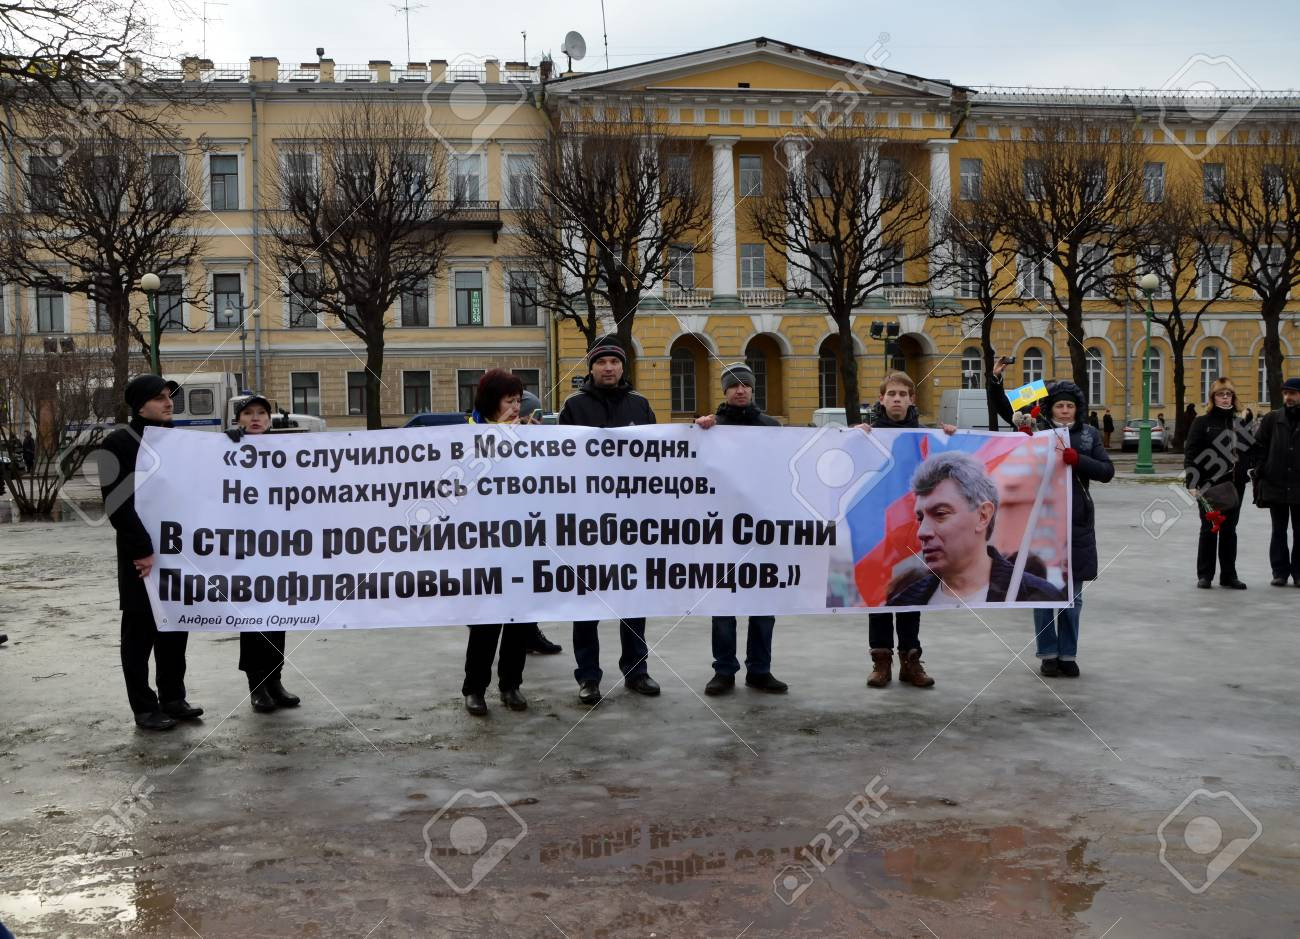 Procession in memory of Boris Nemtsov in St  Petersburg on March